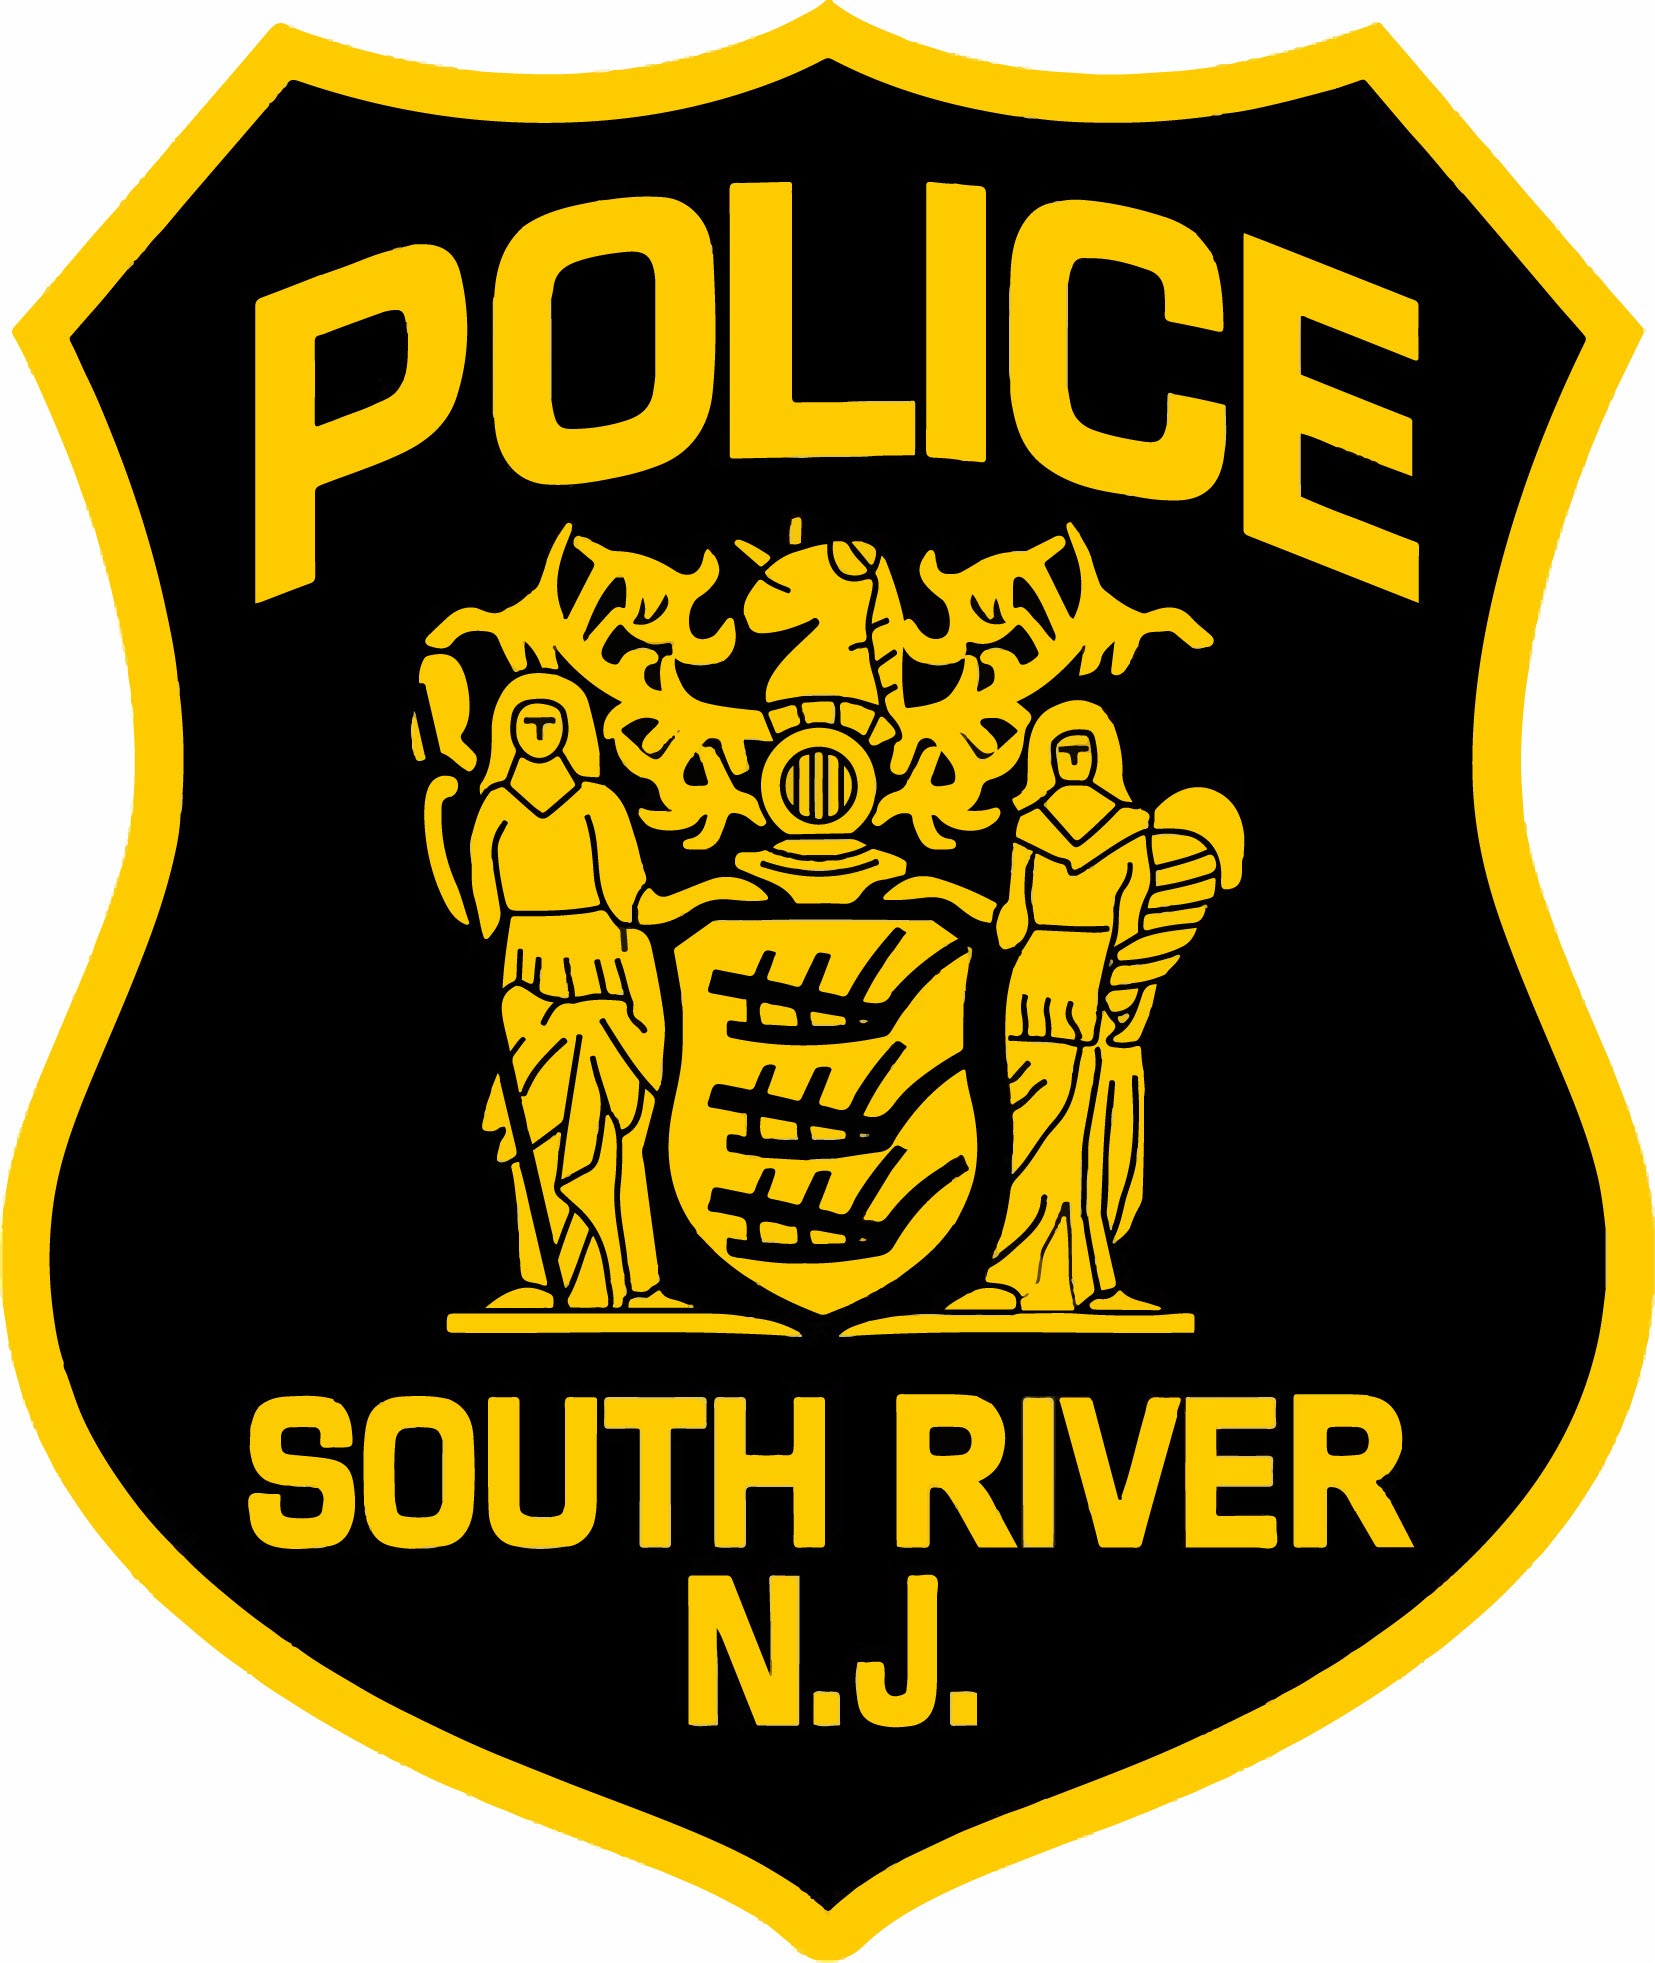 South River, NJ Police Jobs - Certified, Other | PoliceApp